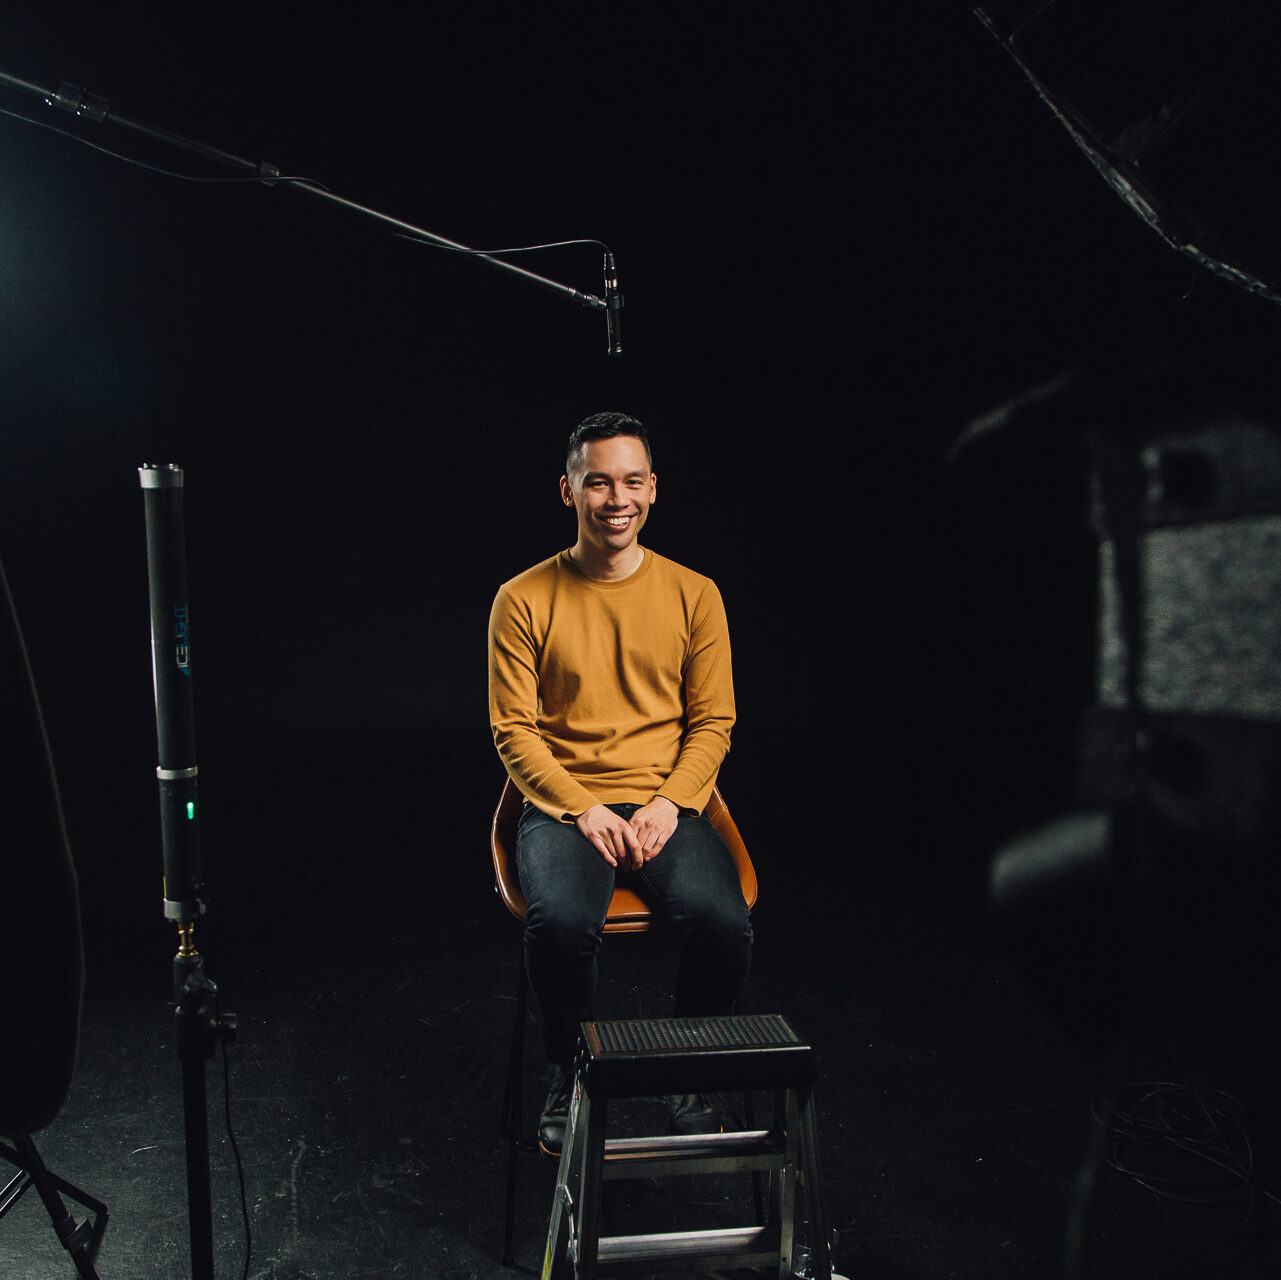 An image of Brandon Yan during the filming of his video. He is sitting on a chair in front of video cameras and studio lighting.